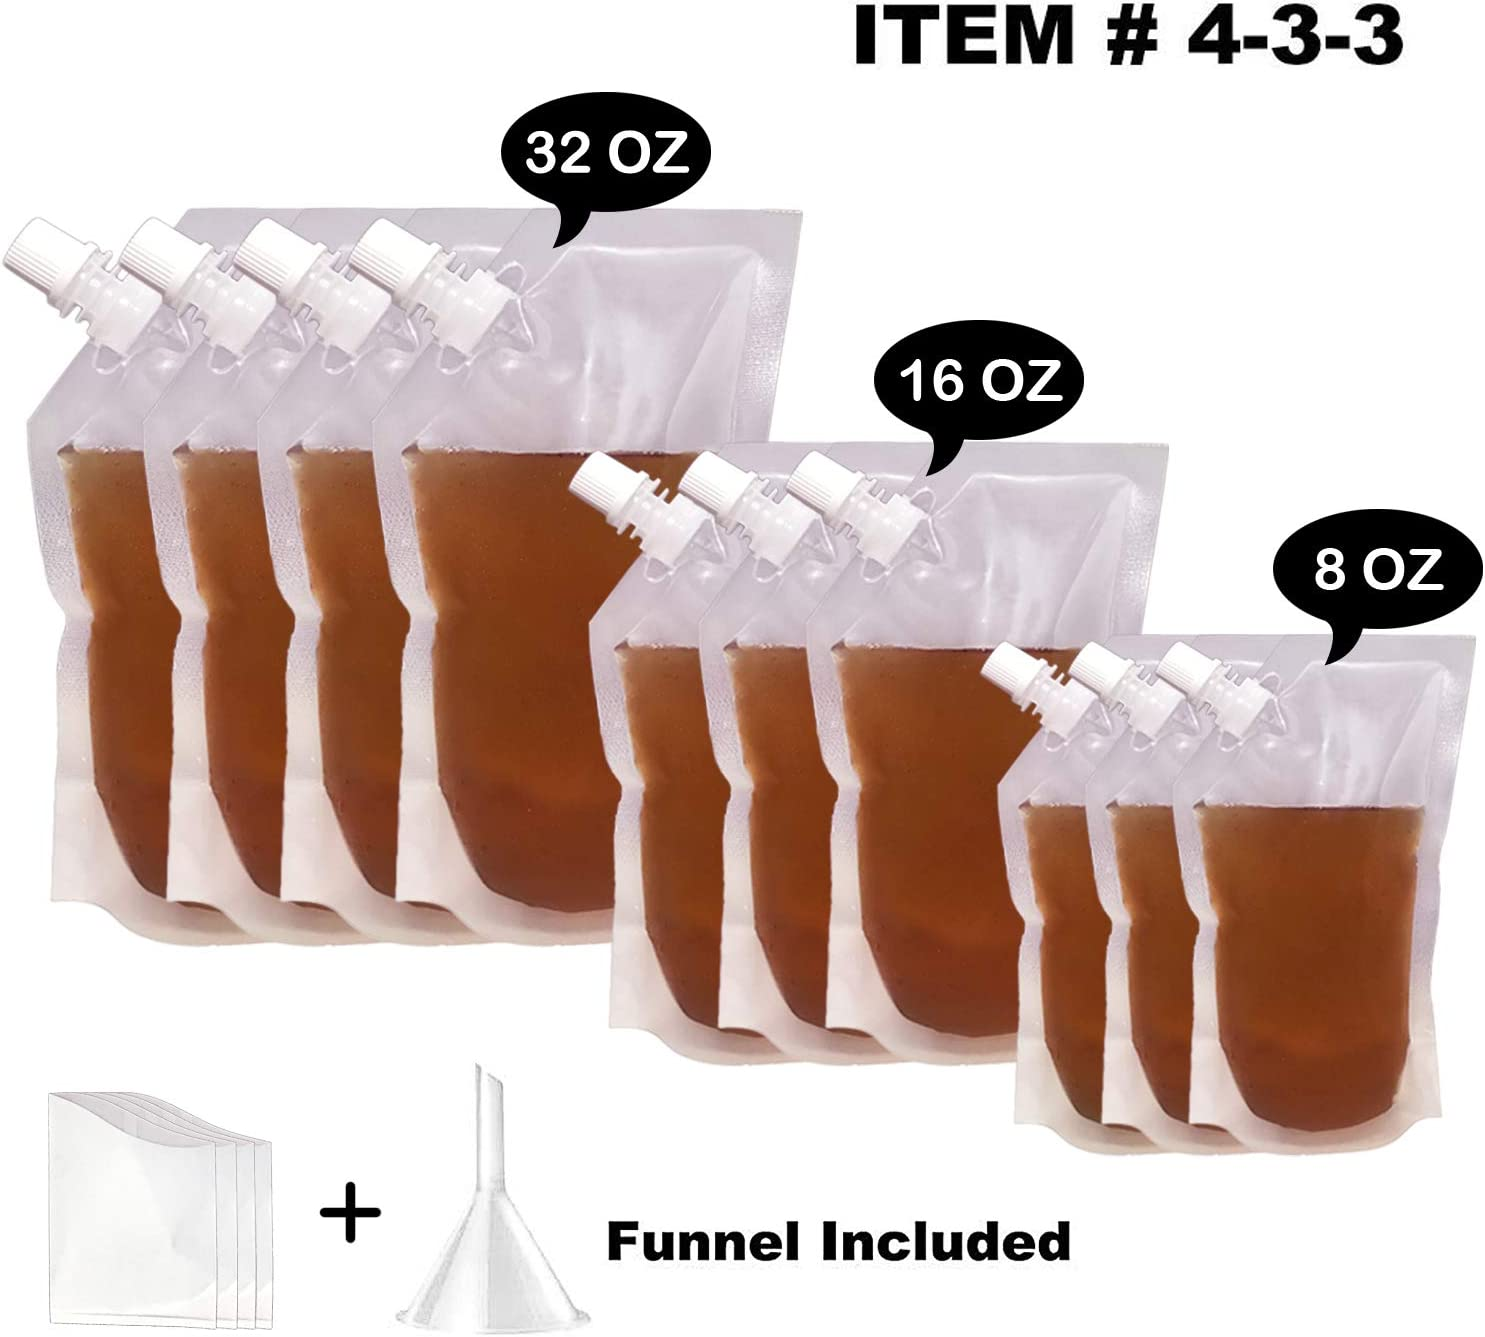 Concealable And Reusable Cruise Plastic Flasks For Liquor Bags Undetectable-No Plastic Taste,rum runner flask cruise kit Sneak Alcohol Anywhere - 4×32oz 3×16oz 3×8oz 1× Funnel